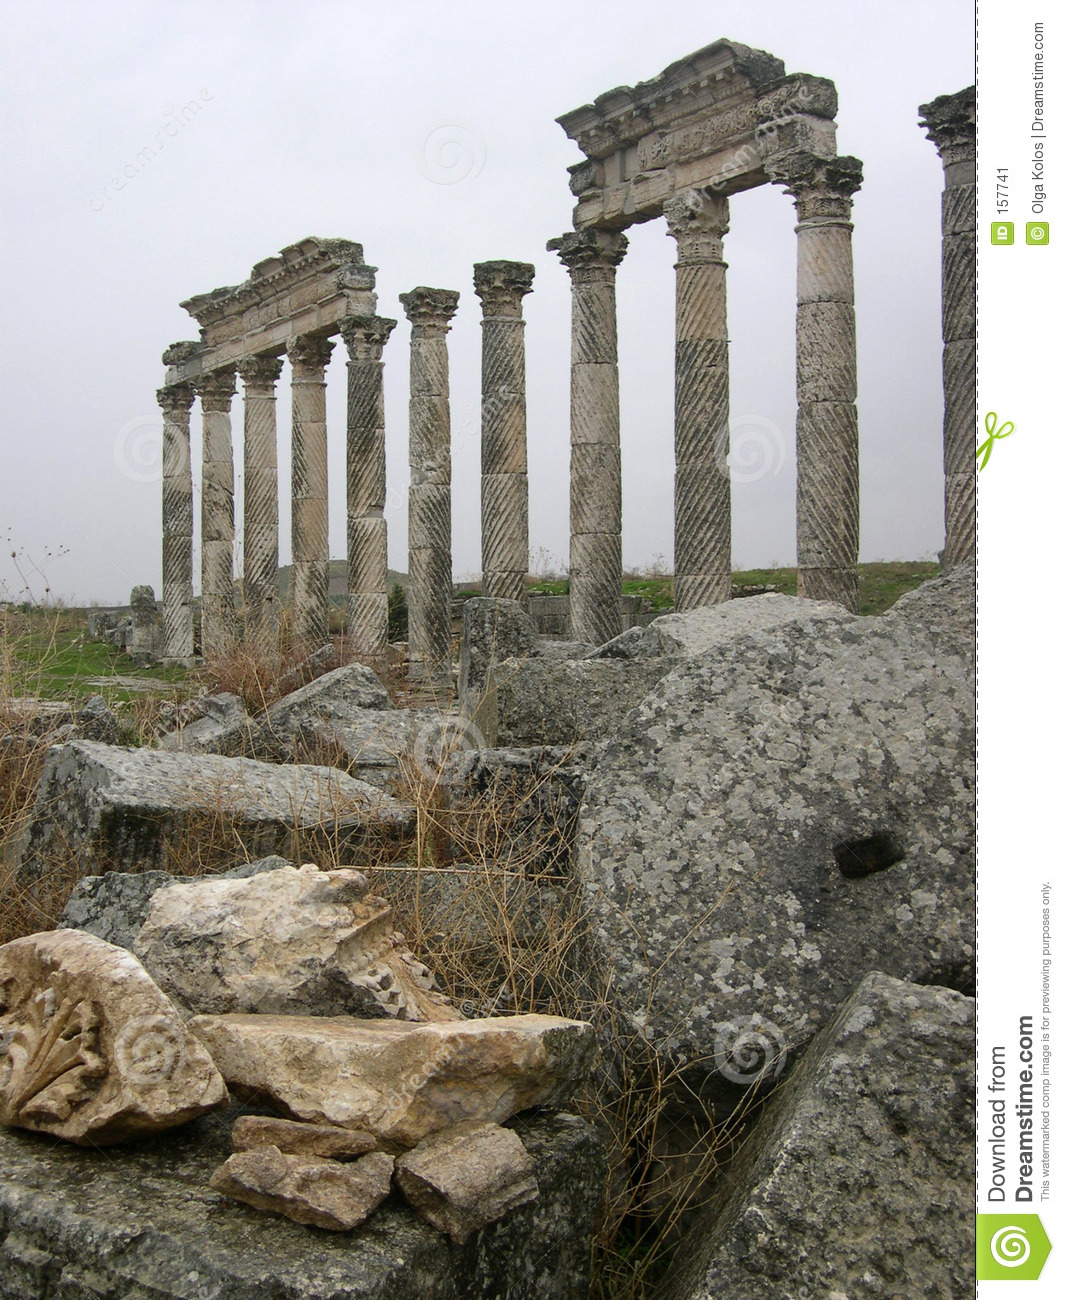 Colonnade in Apamea